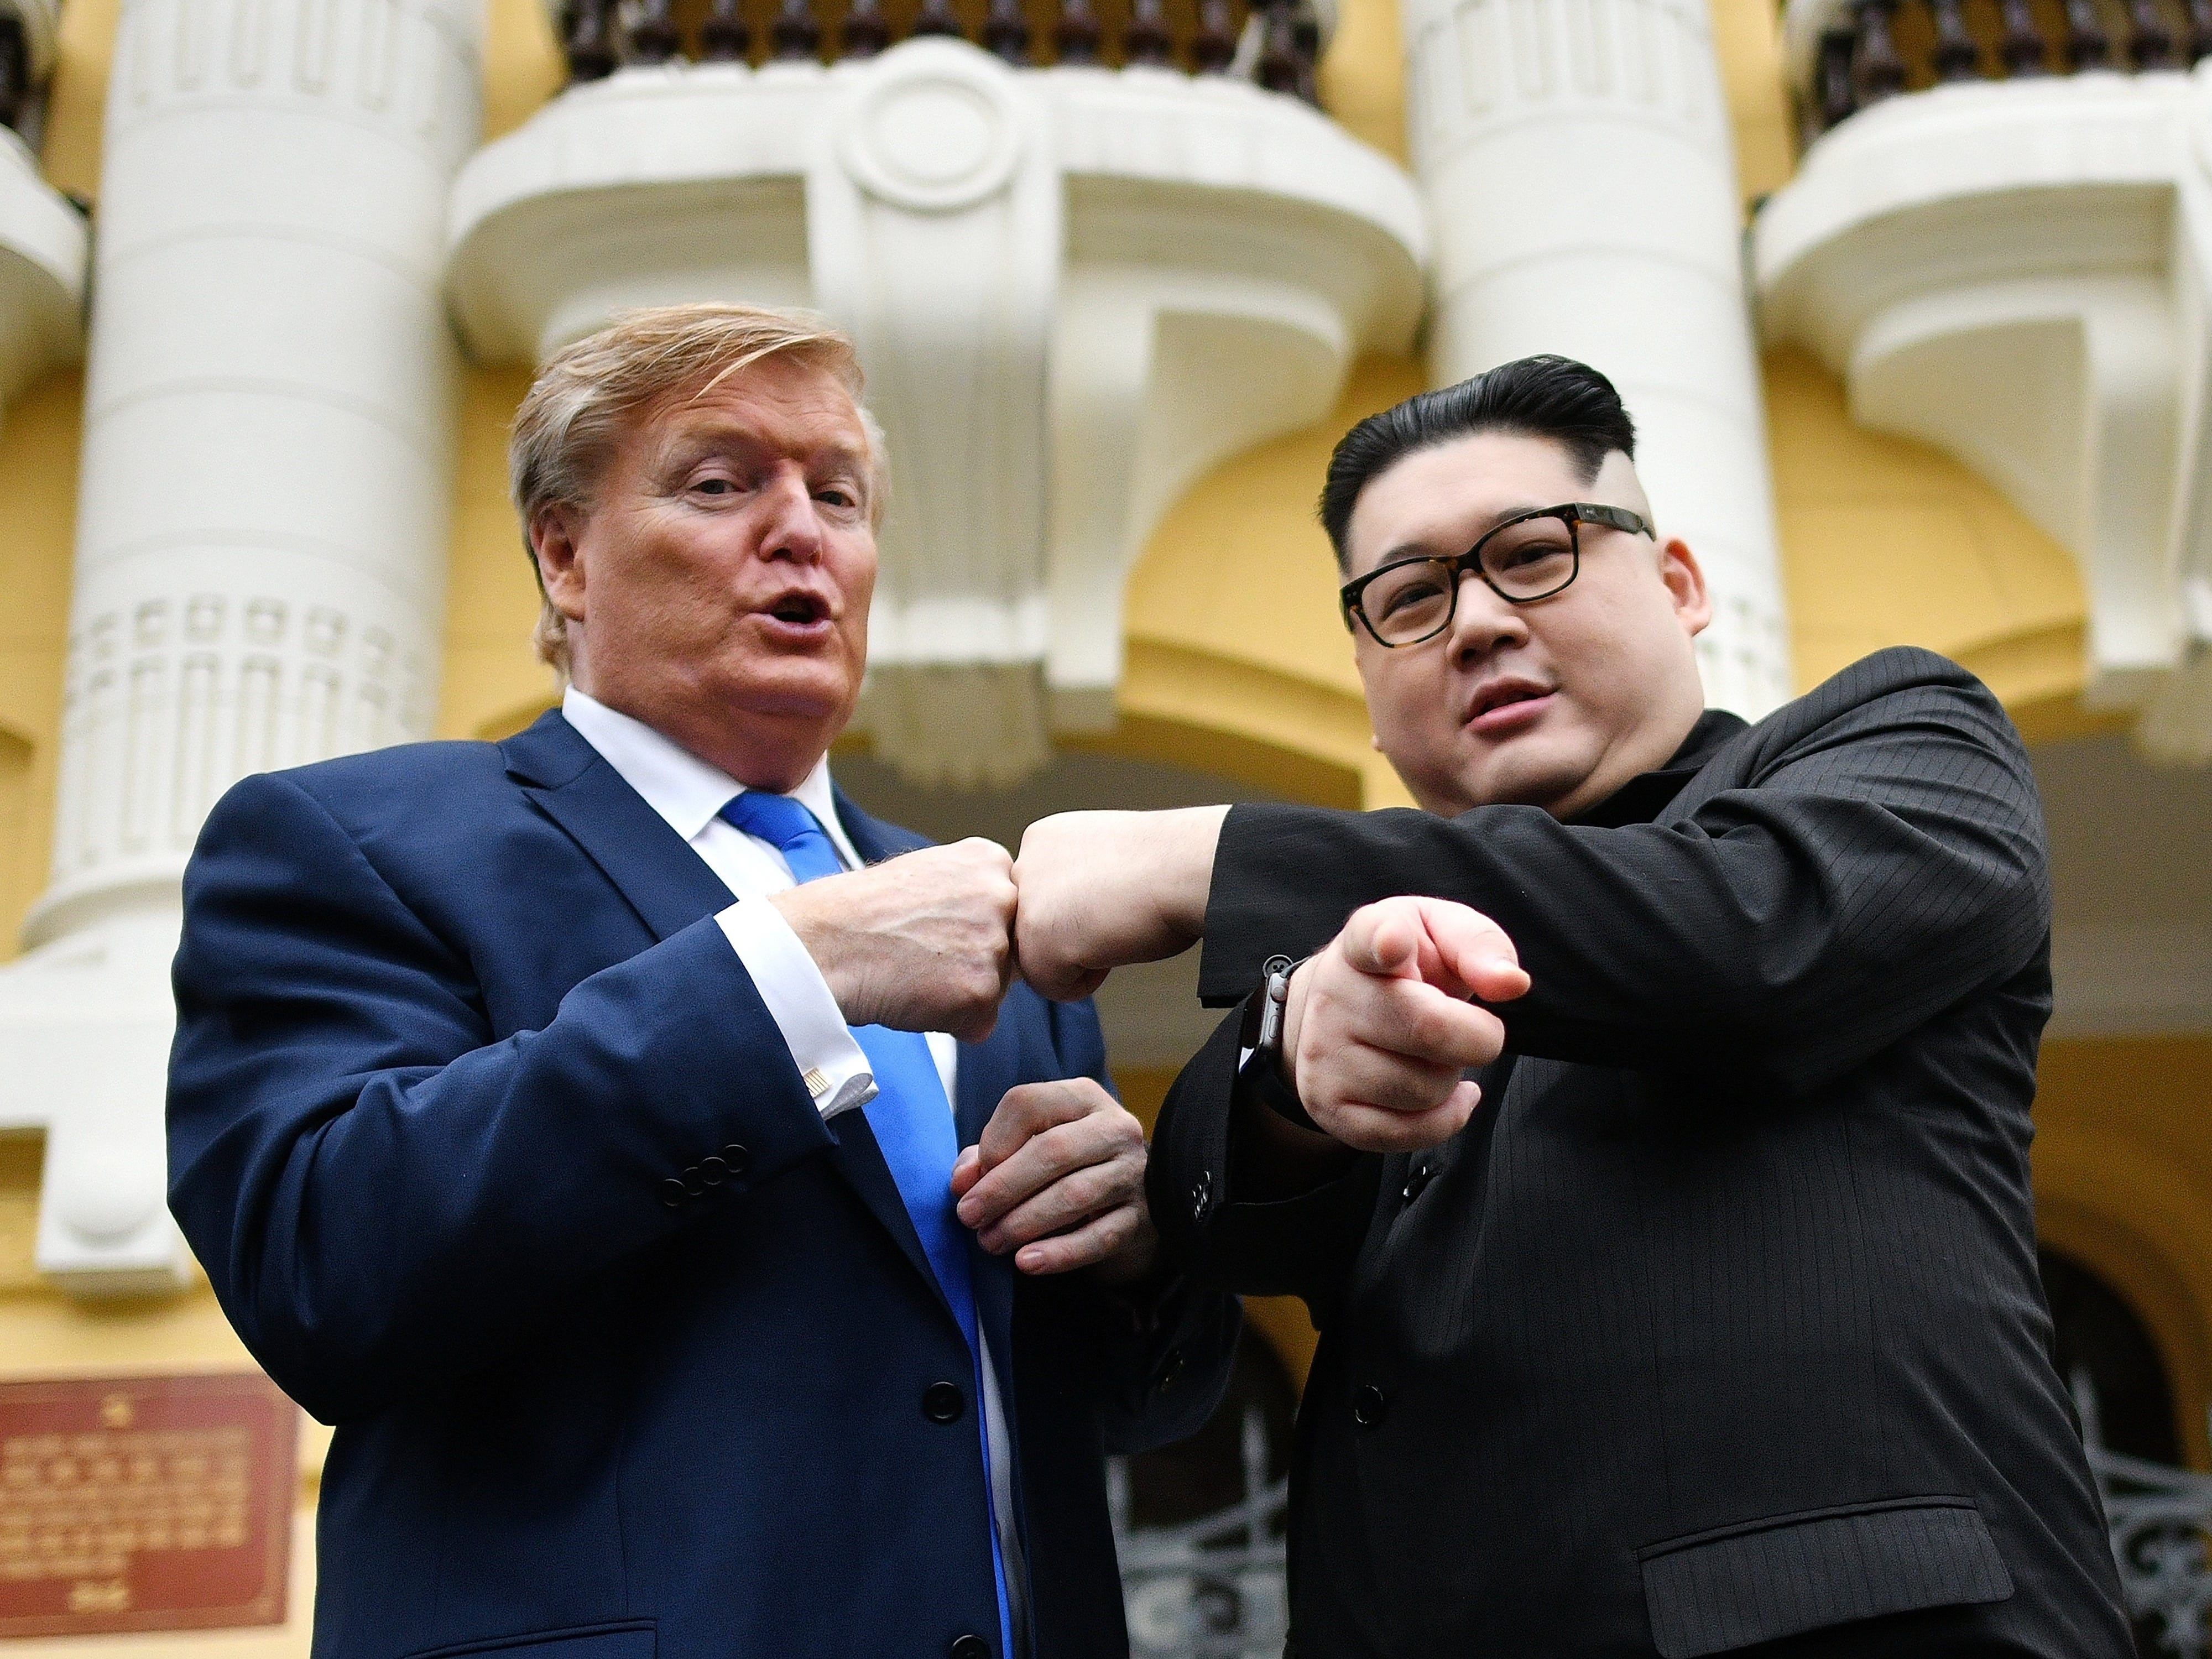 U.S. President Donald Trump impersonator Russel White and North Korean leader Kim Jong Un impersonator Howard X pose for photographs outside the Opera House in Hanoi on Feb. 22, 2019.